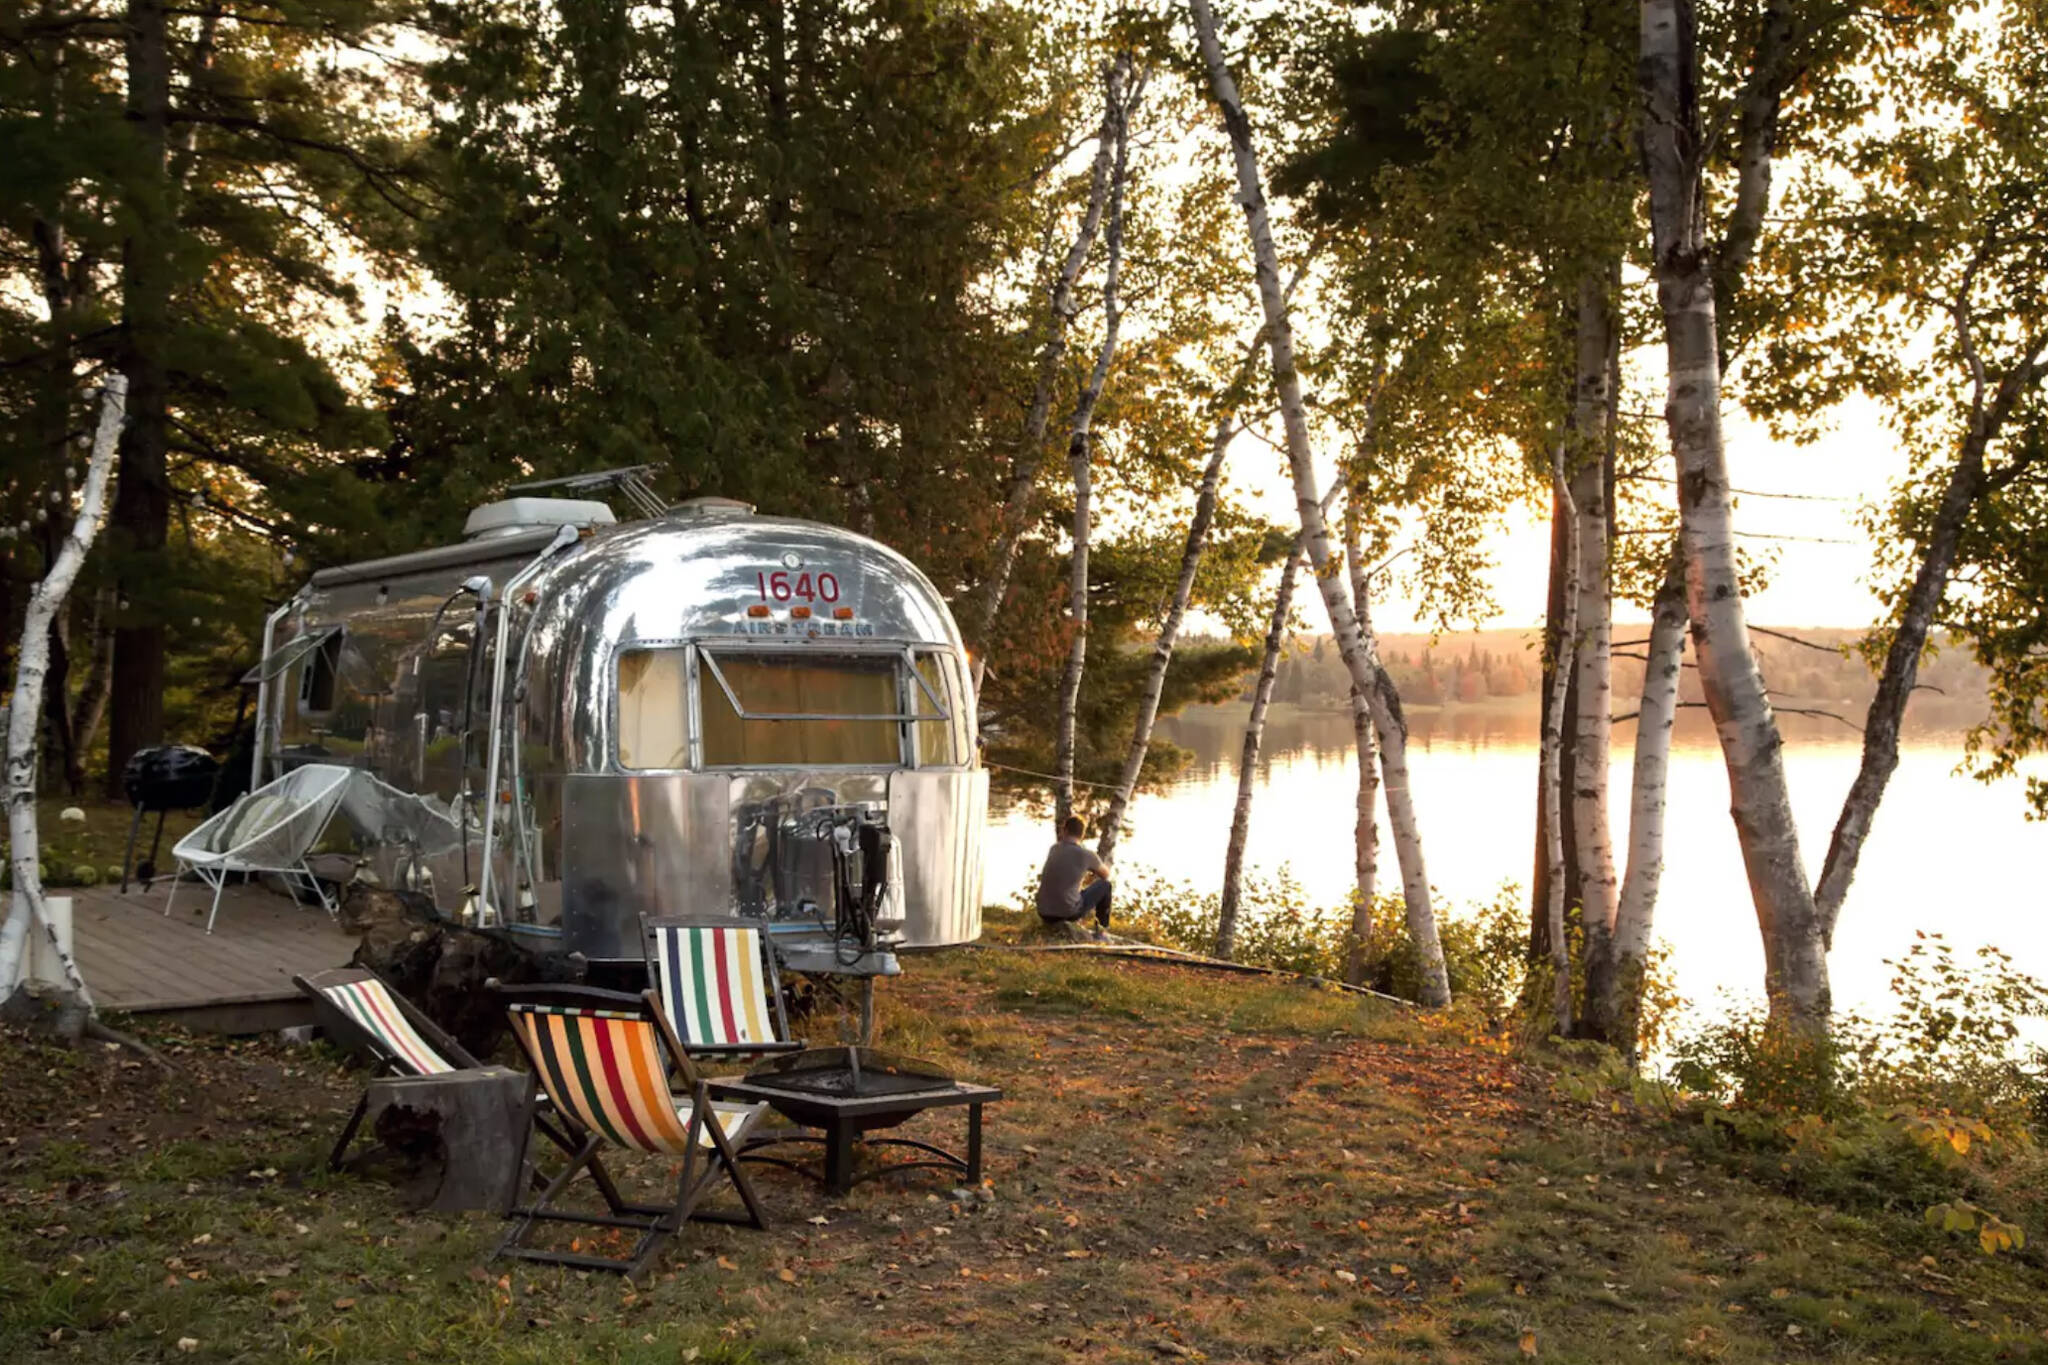 northridge inn airstream